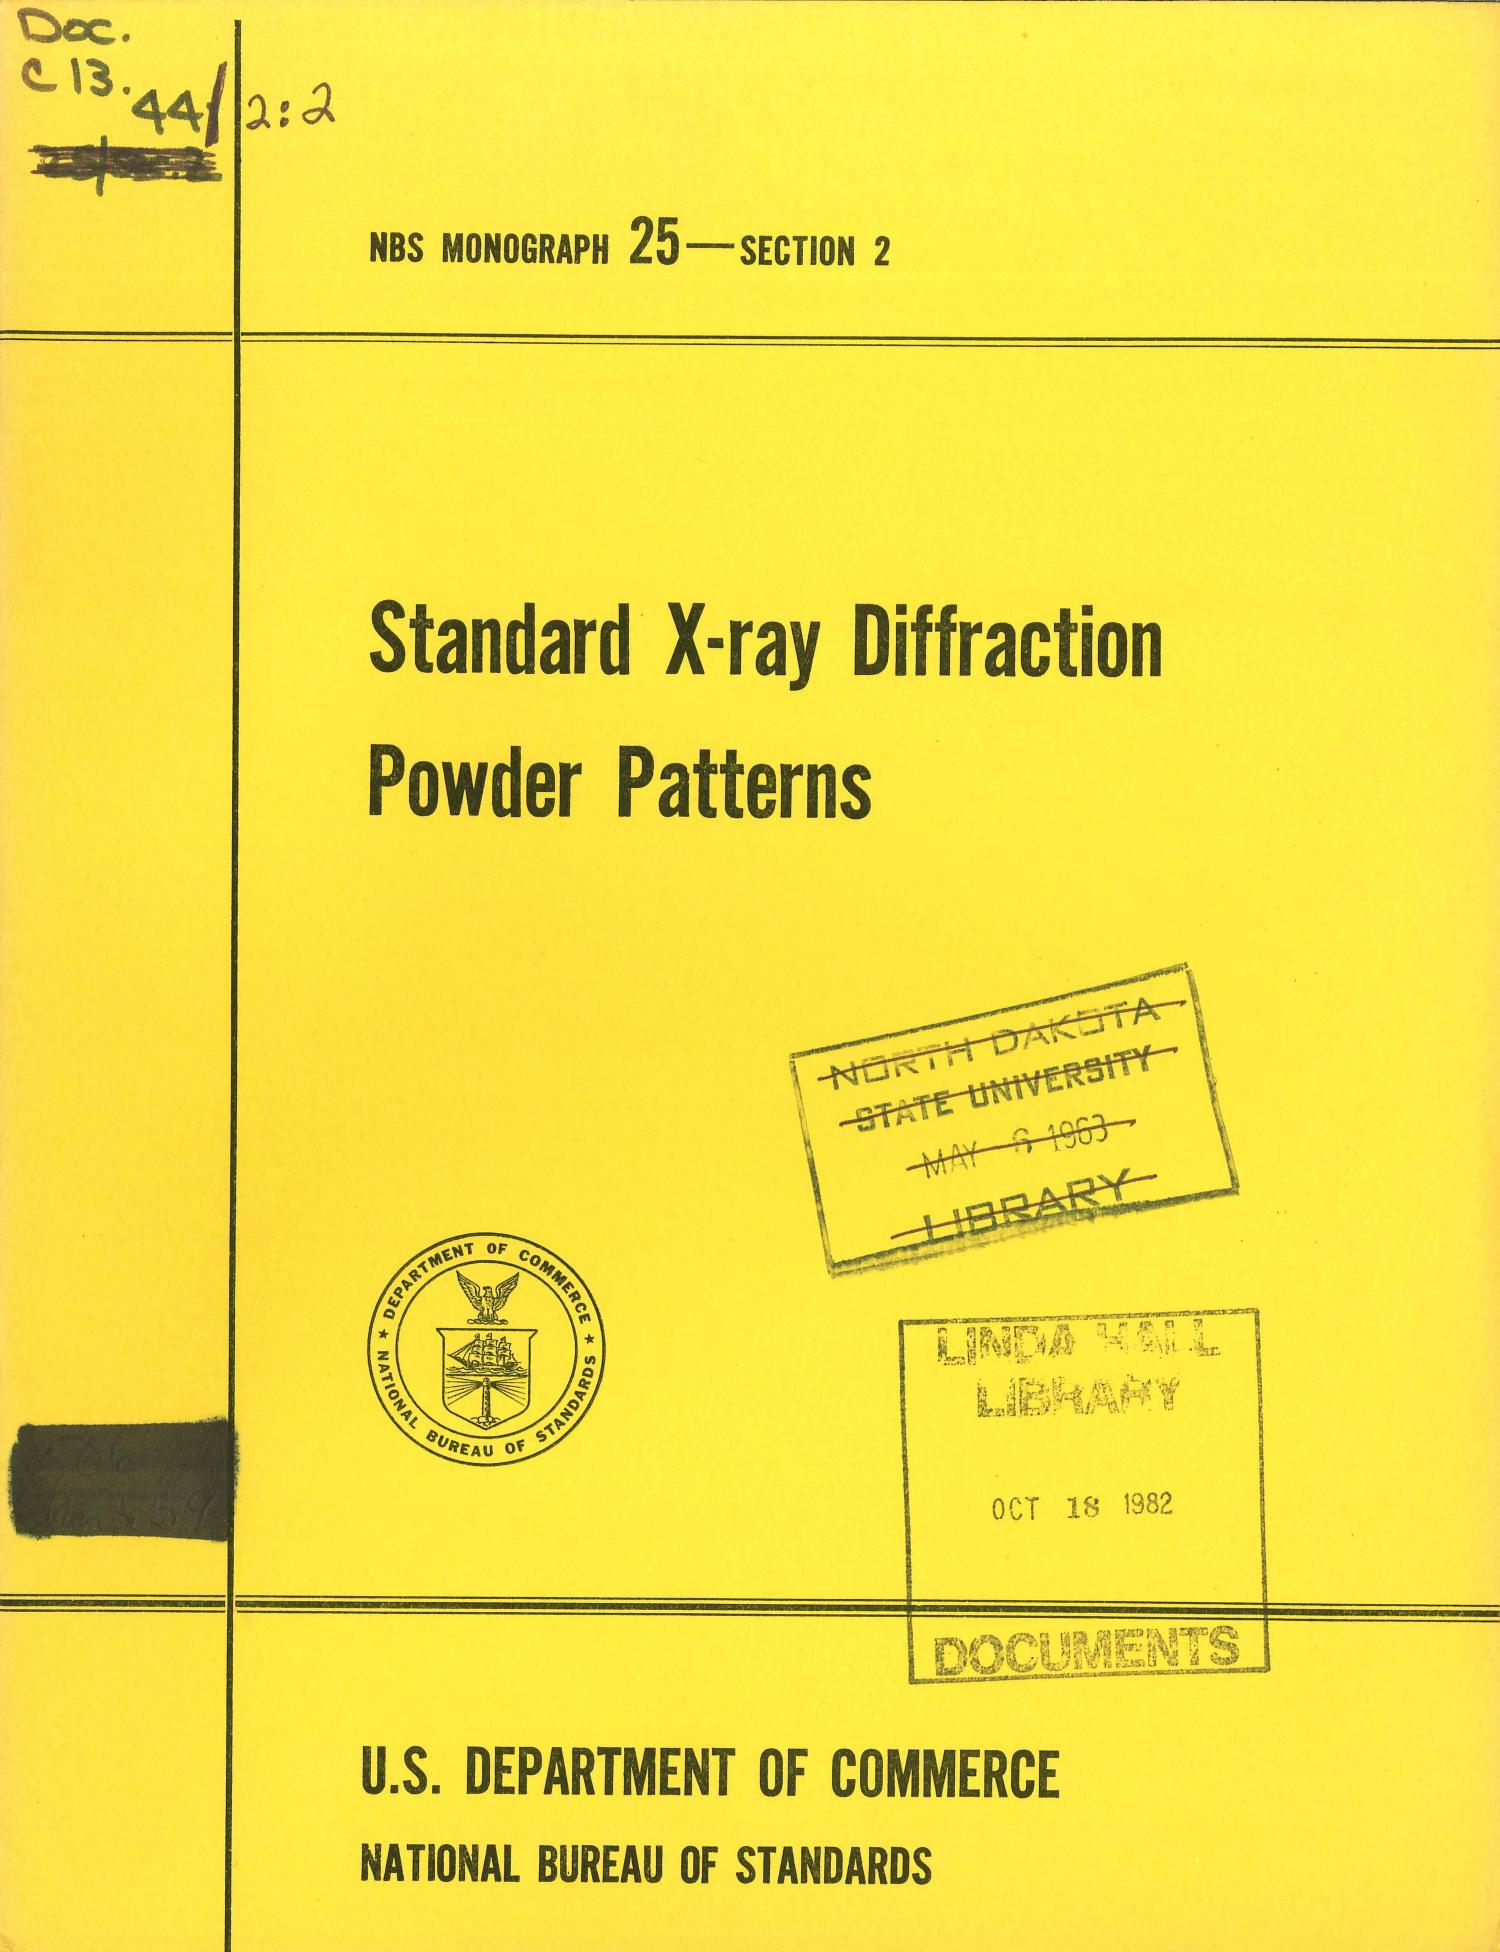 Standard X-ray Diffraction Powder Patterns: Section 2